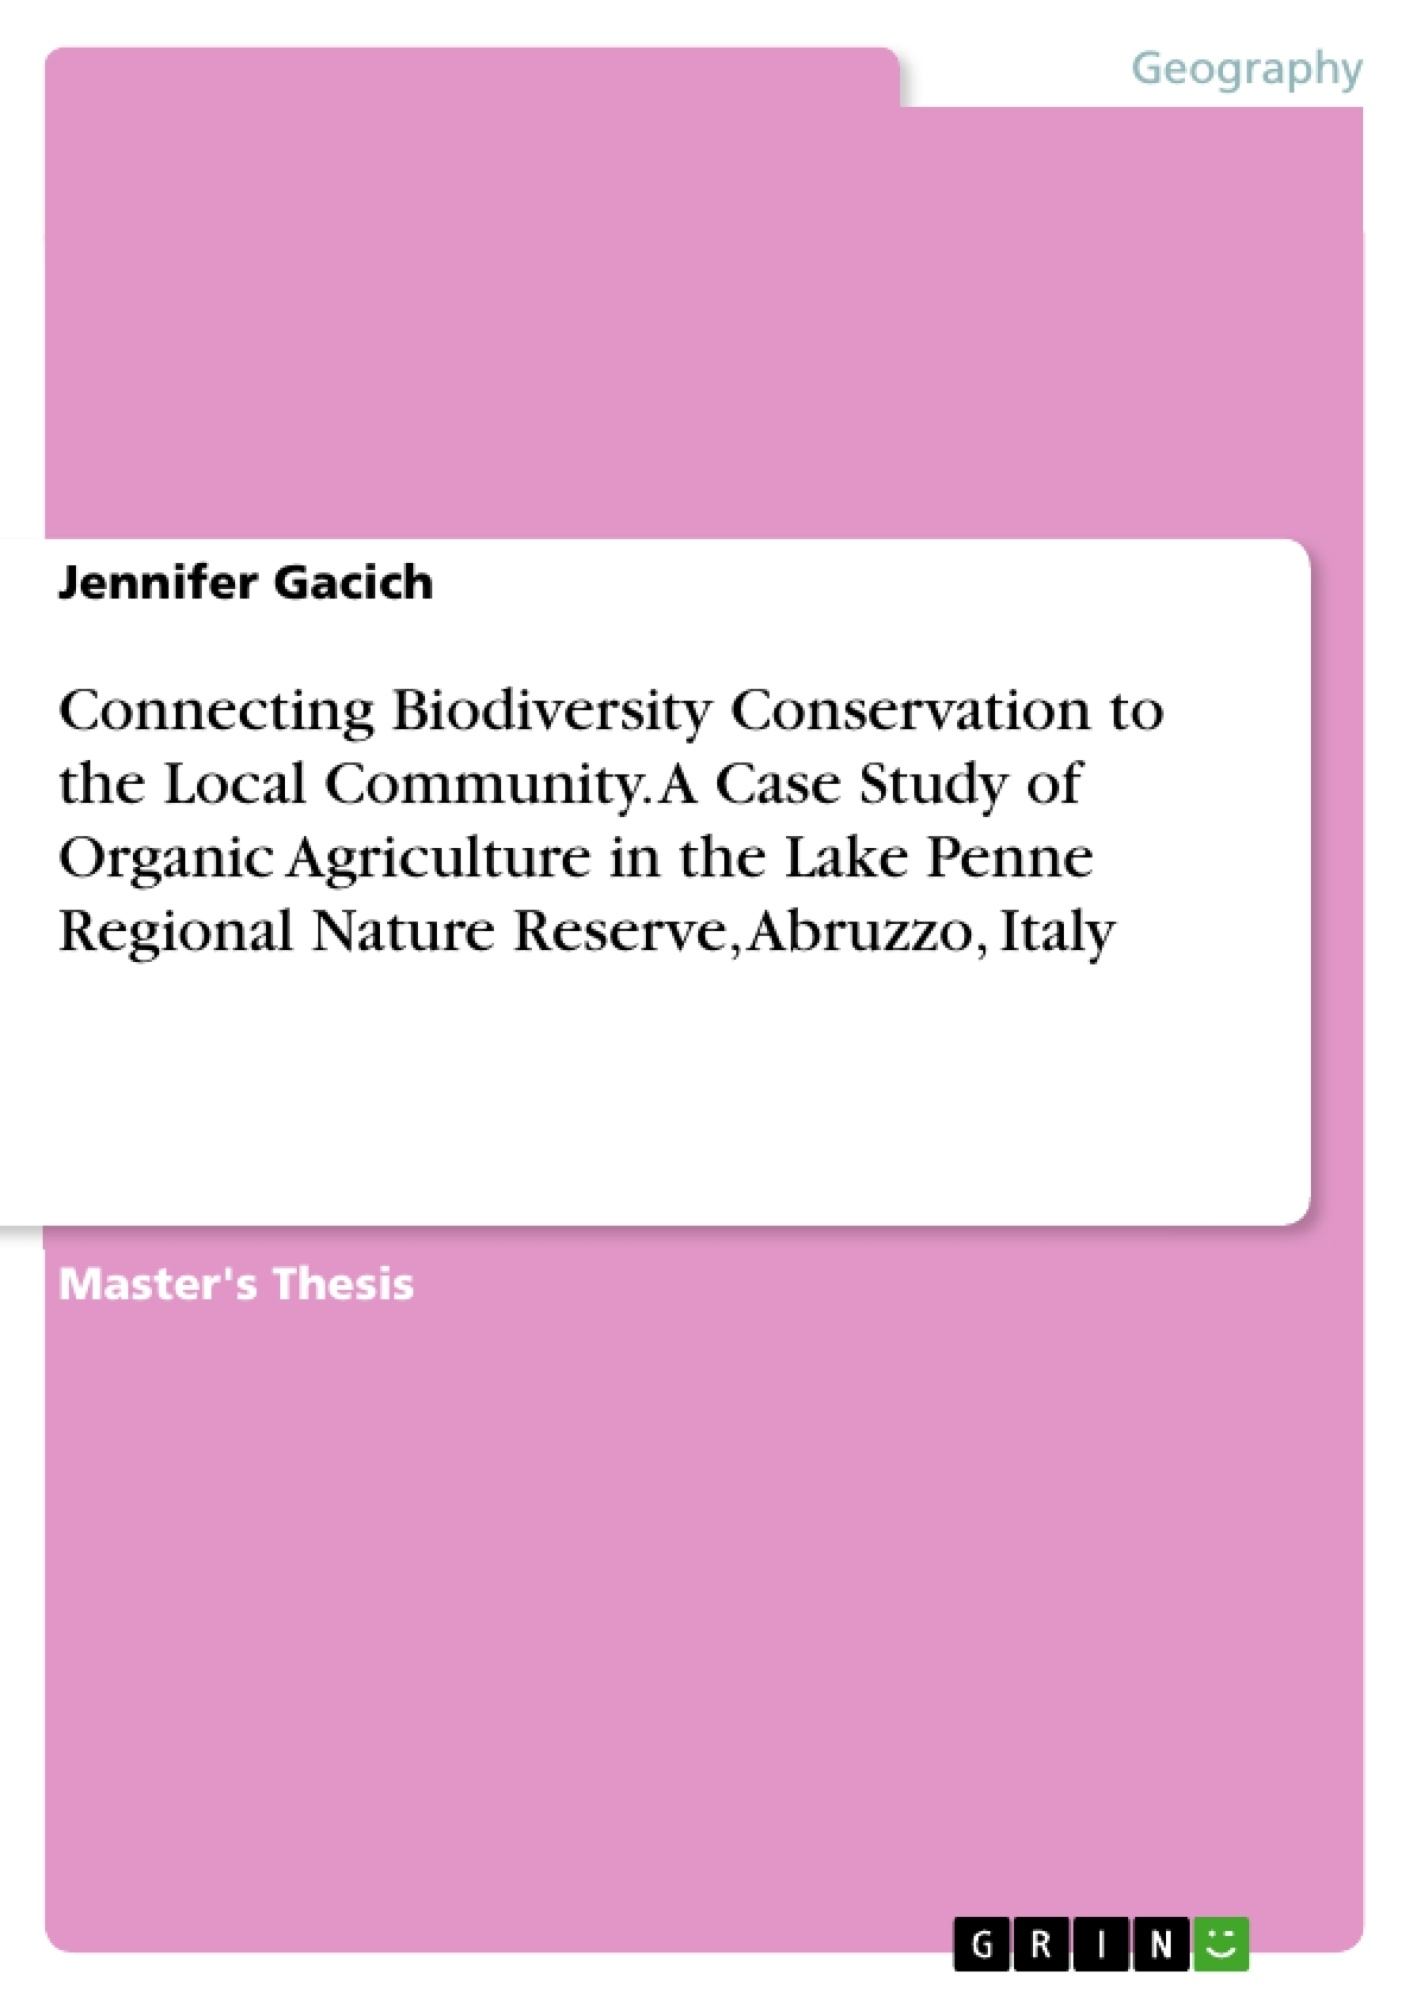 Title: Connecting Biodiversity Conservation to the Local Community. A Case Study of Organic Agriculture in the Lake Penne Regional Nature Reserve, Abruzzo, Italy